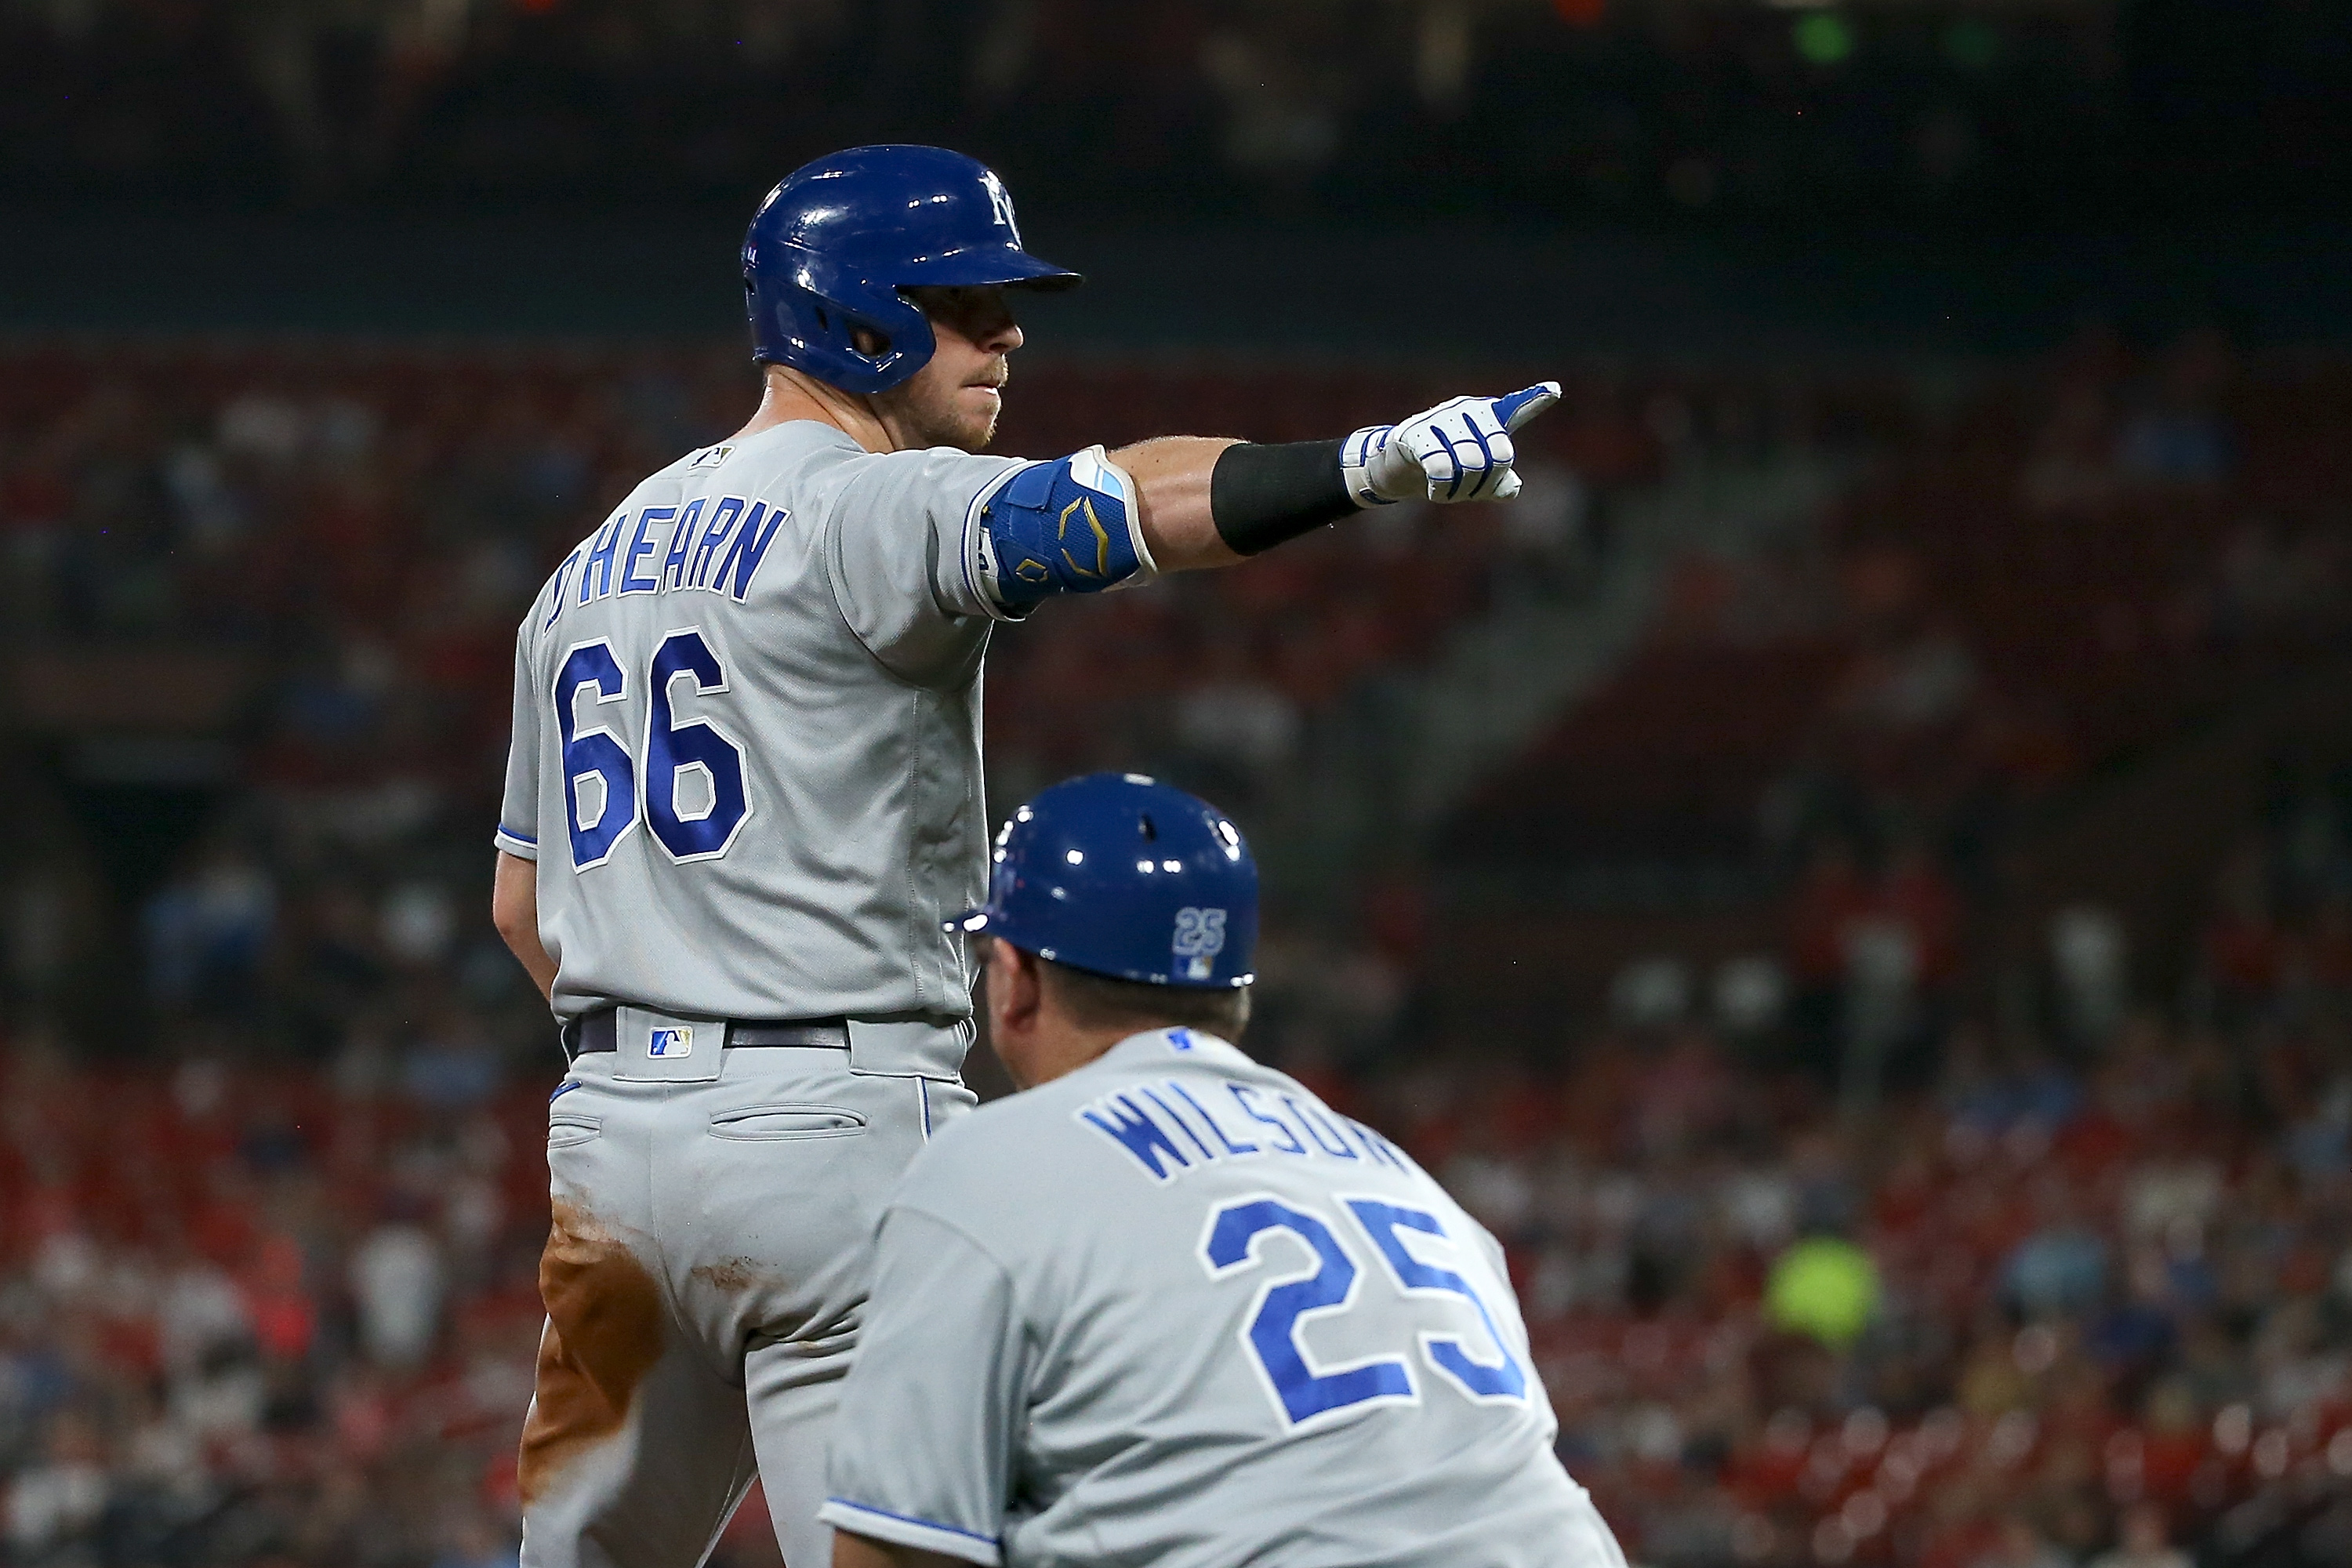 Ryan O'Hearn #66 of the Kansas City Royals points to the dugout after hitting a RBI triple during the sixth inning against the St. Louis Cardinals at Busch Stadium on August 6, 2021 in St. Louis, Missouri.